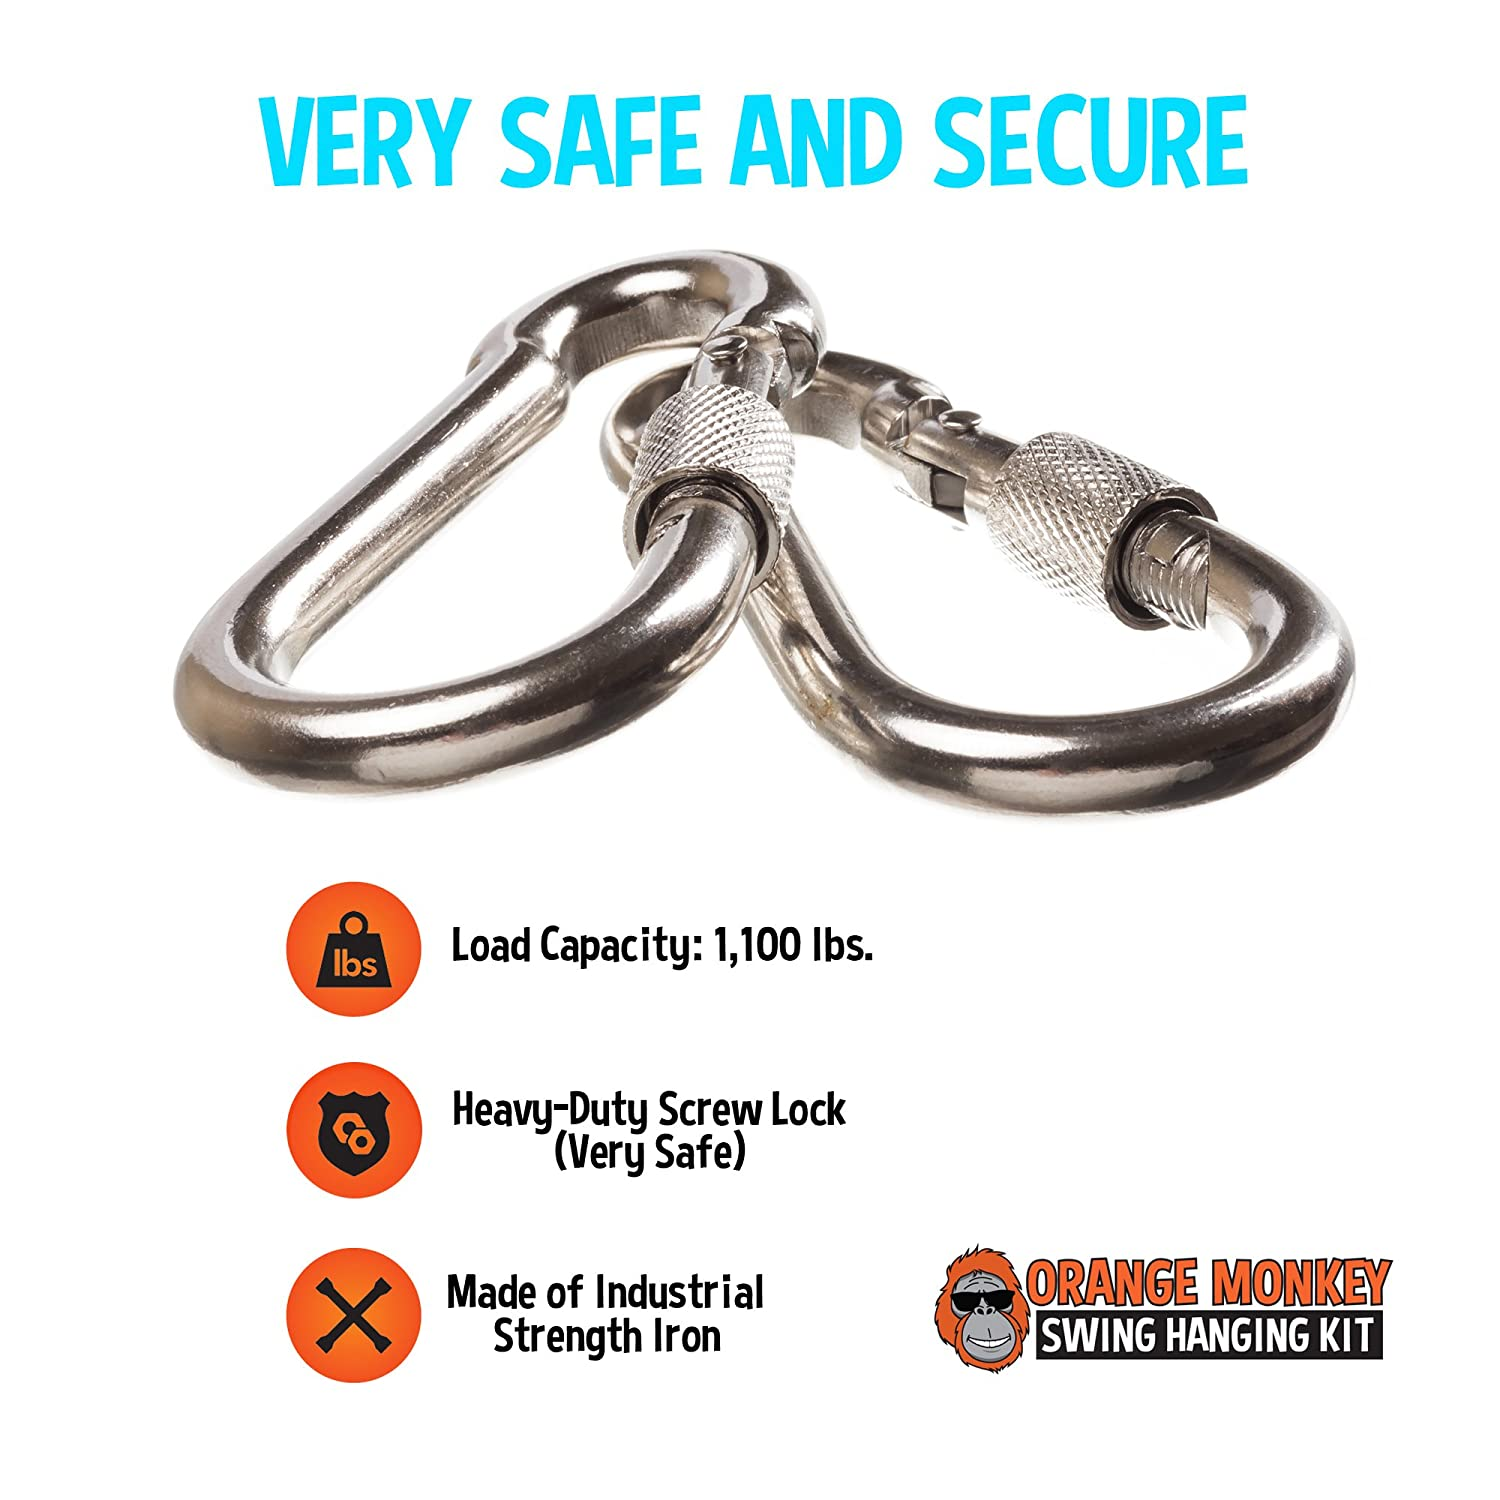 Swing Straps | Tree Swing Hanging Kit Connects To Any Swing | (2) 5' Orange Tree Swing Straps With Safety Locking Carabiners | Swing 360 Degrees (Swivel) | SGA Certified | No Tools Required Orange Monkey Outdoors